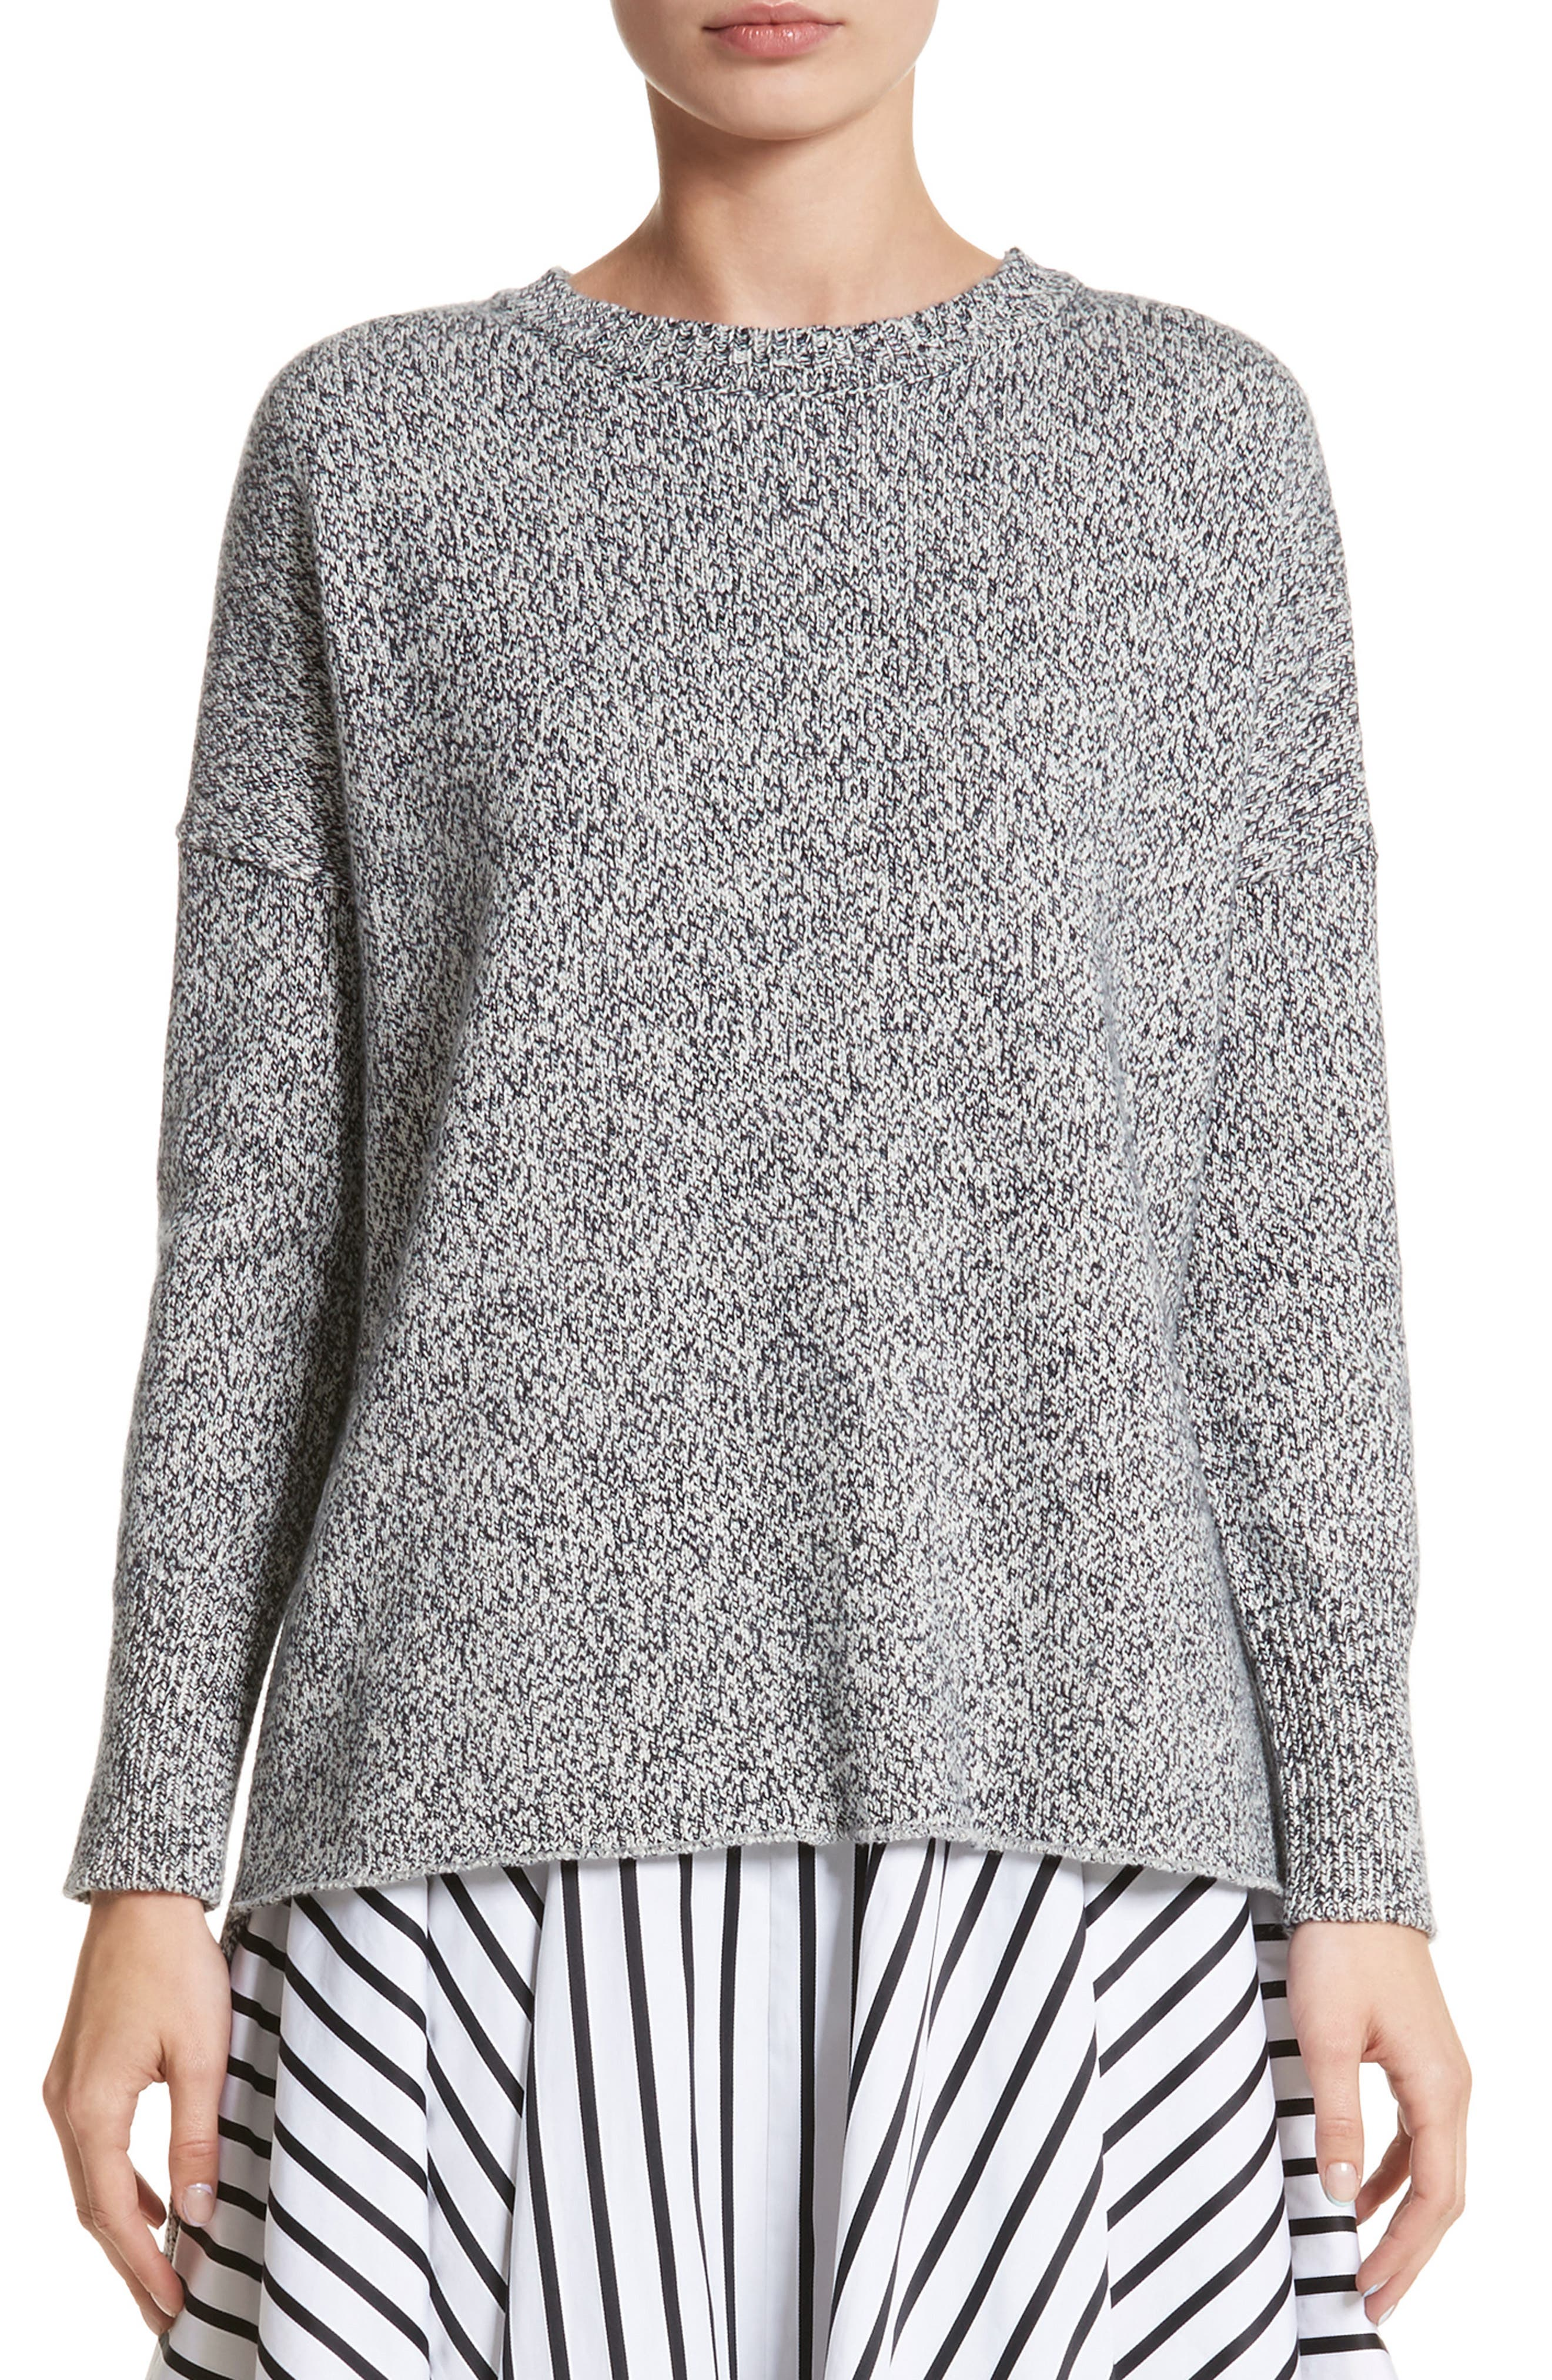 Marled Cotton, Cashmere & Silk Sweater,                             Main thumbnail 1, color,                             020